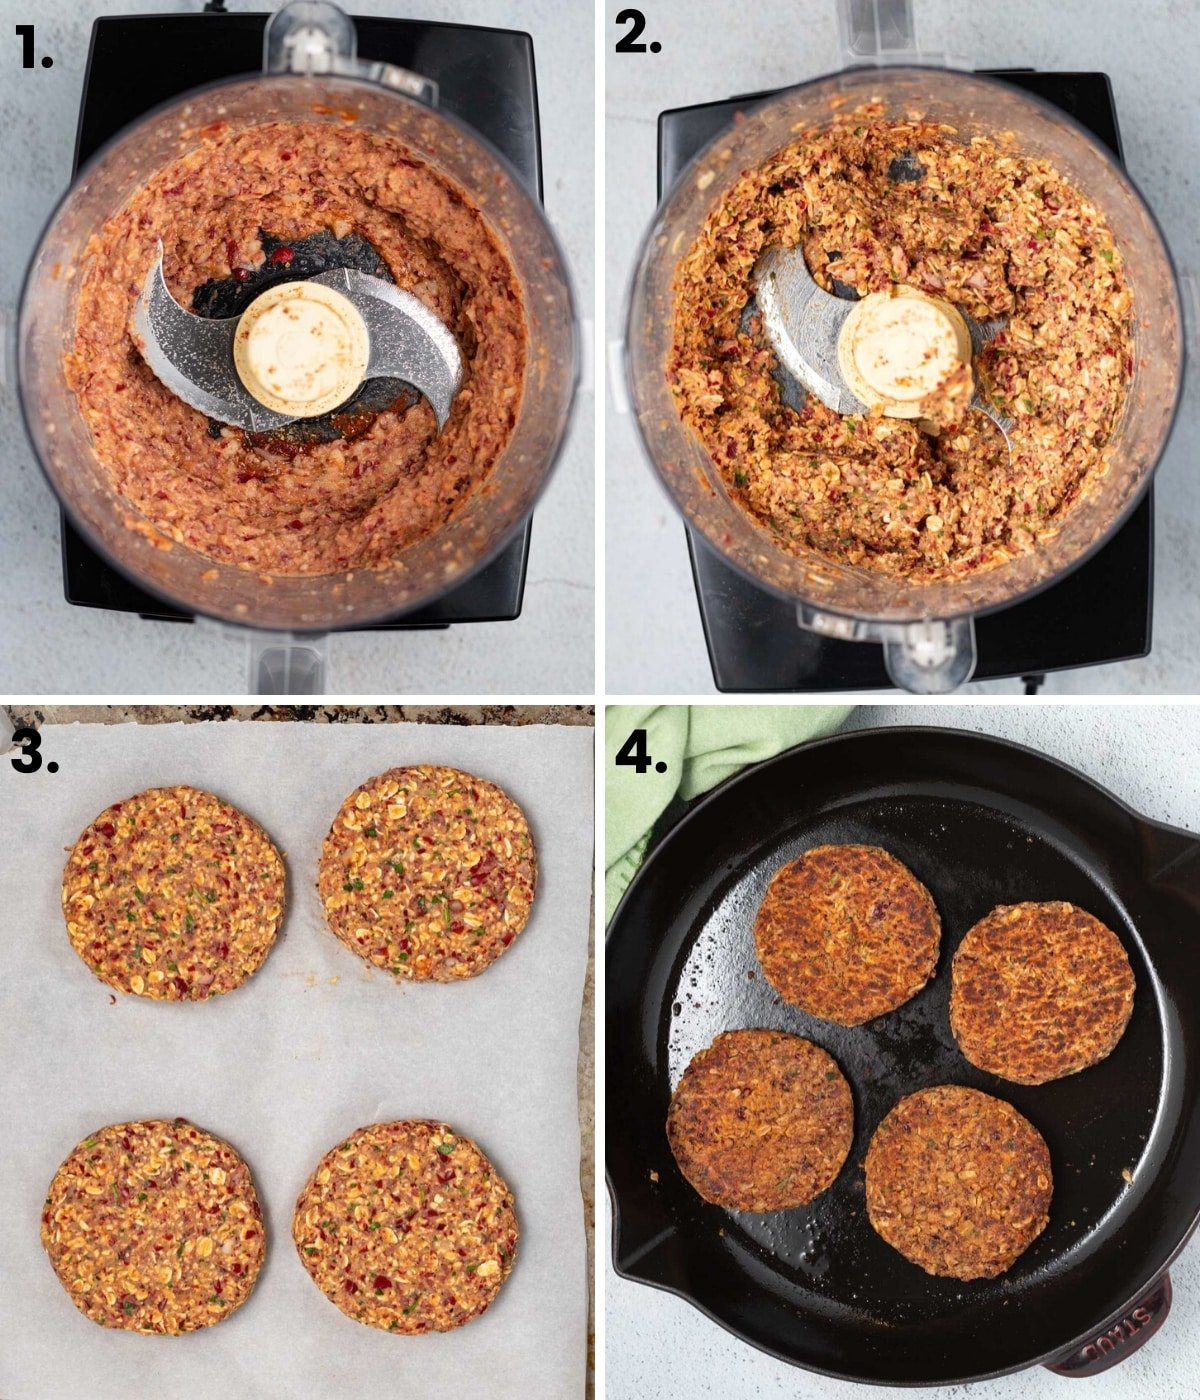 photos showing how to make kidney bean burgers as per the written instructions